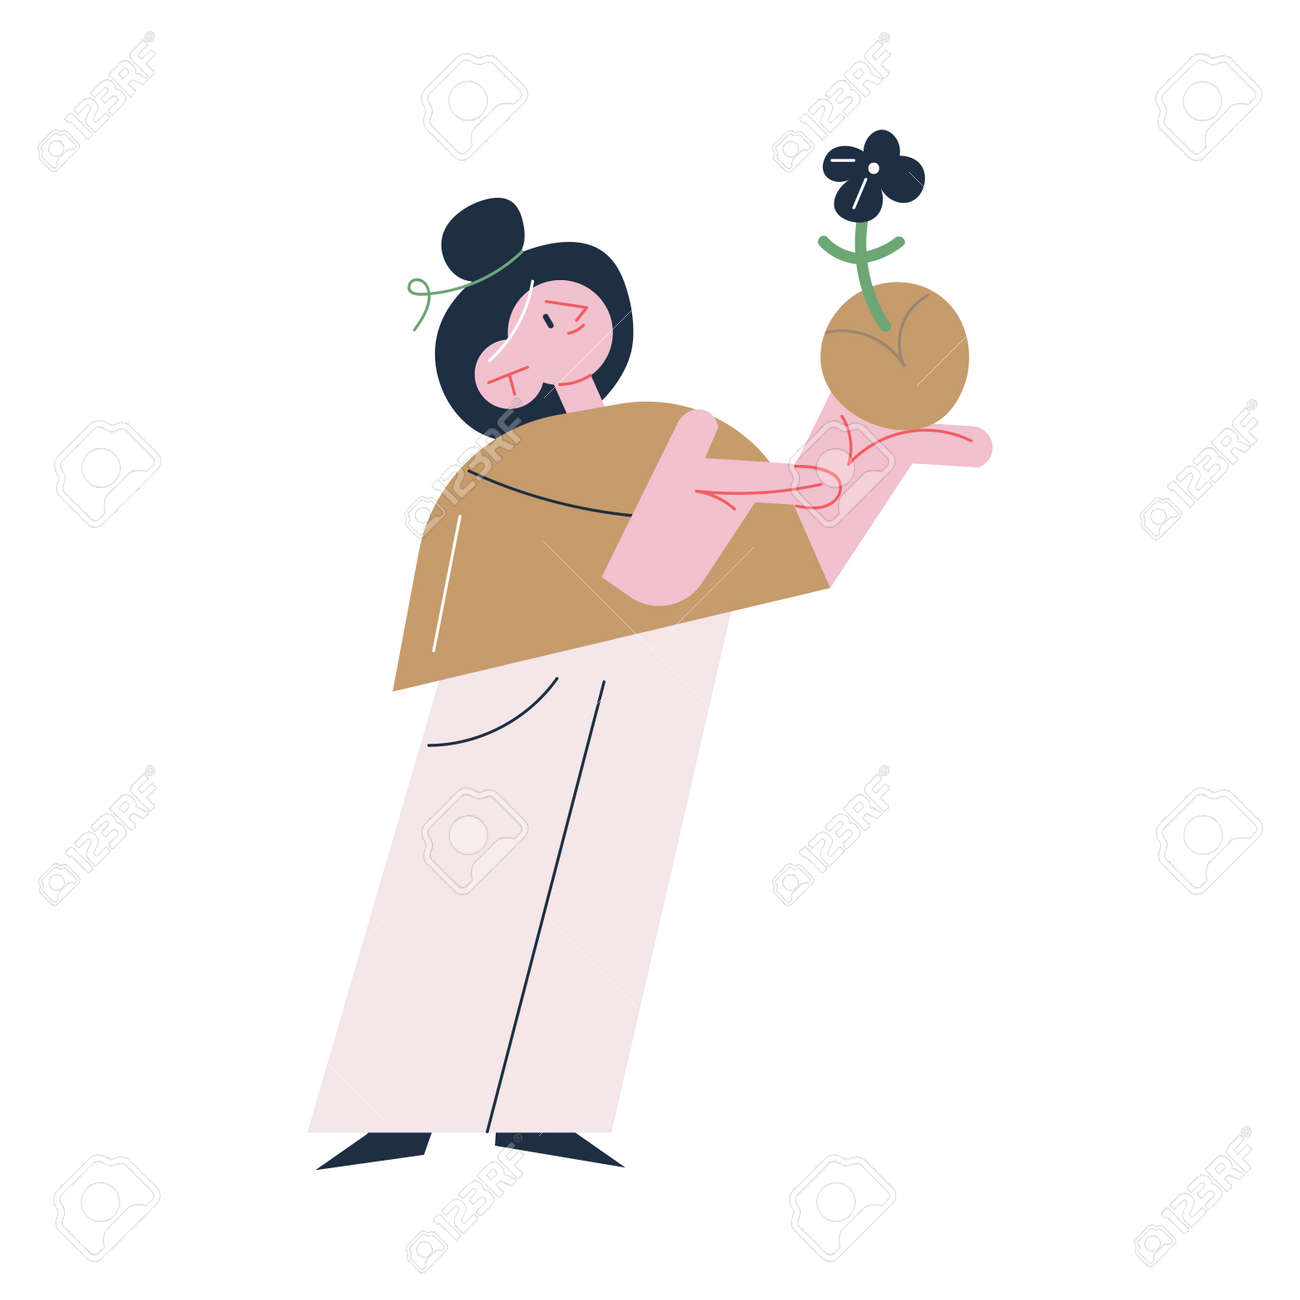 Young happy woman gardener standing holding plant in soil - 164873981